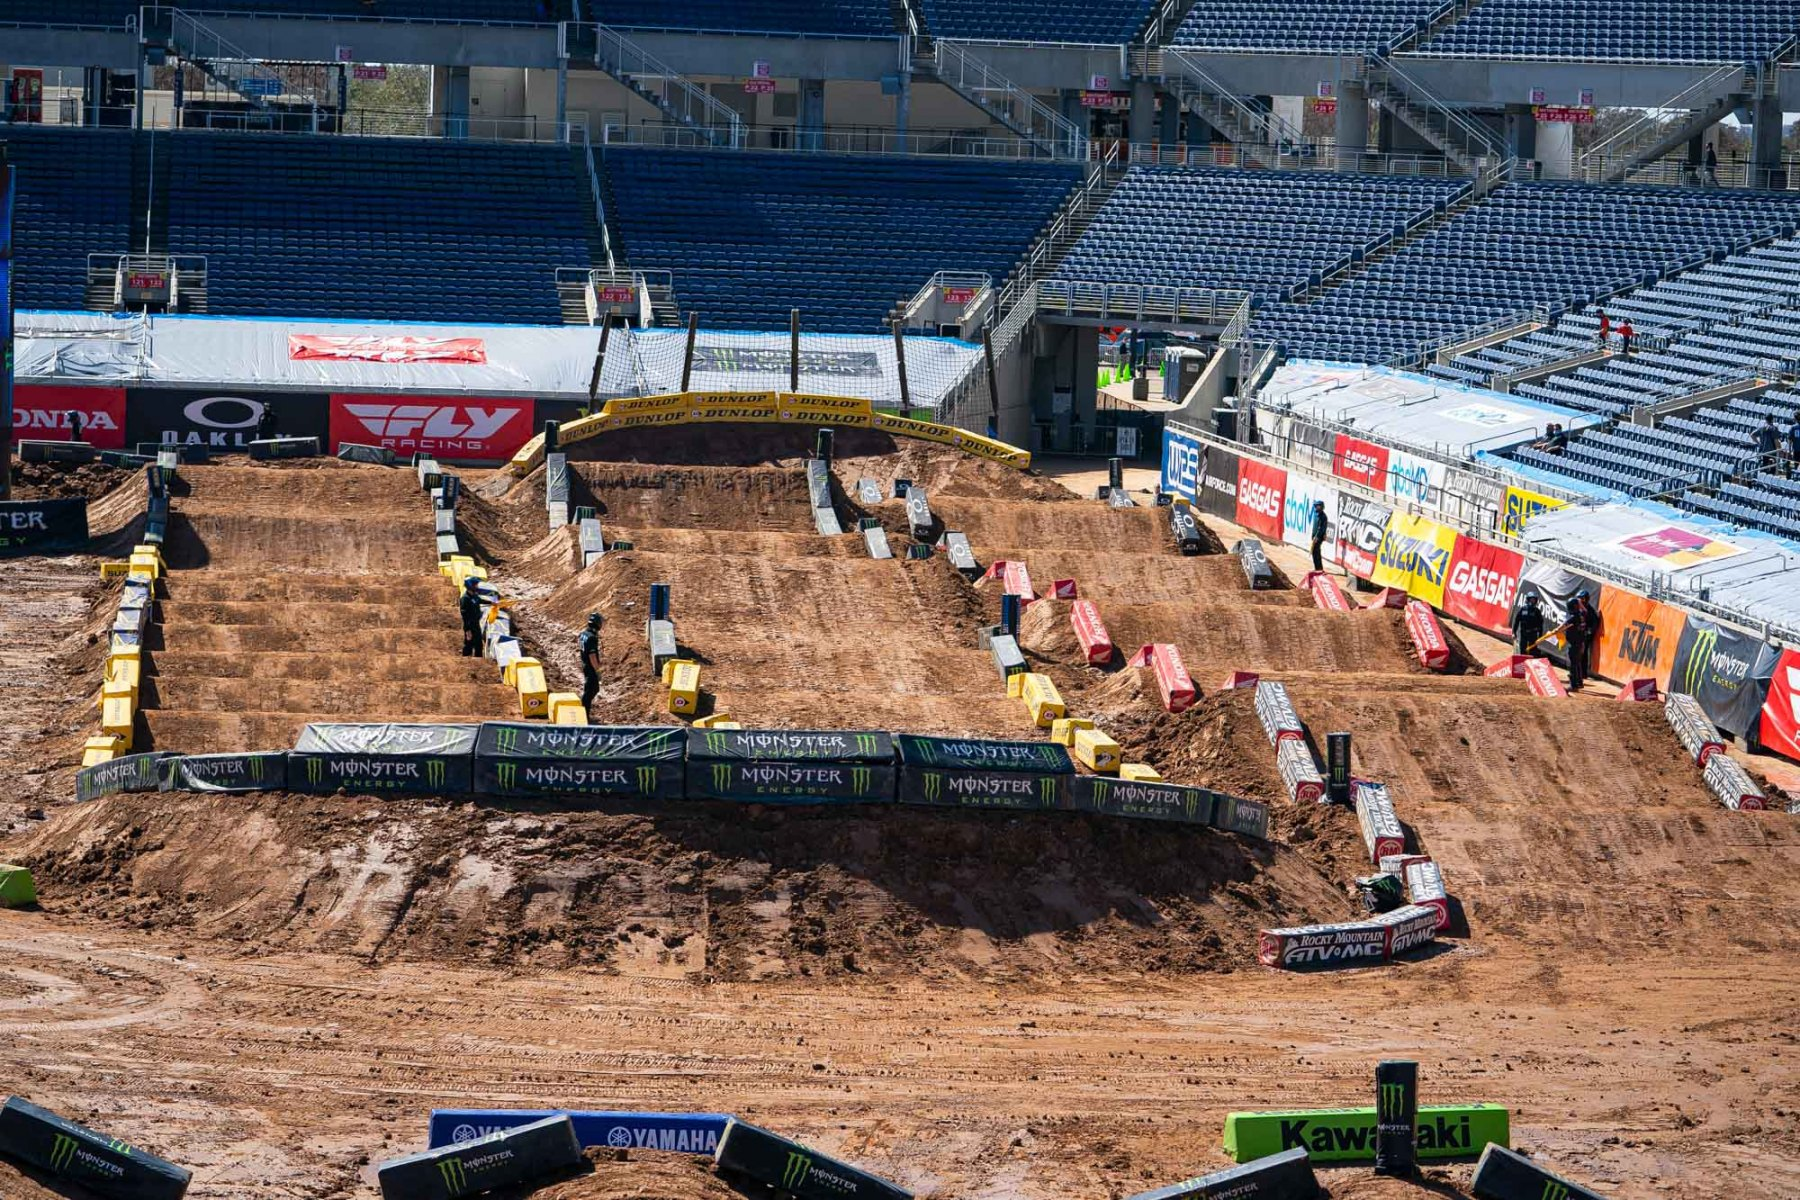 2021-ORLANDO-TWO-SUPERCROSS_KICKSTART_1470